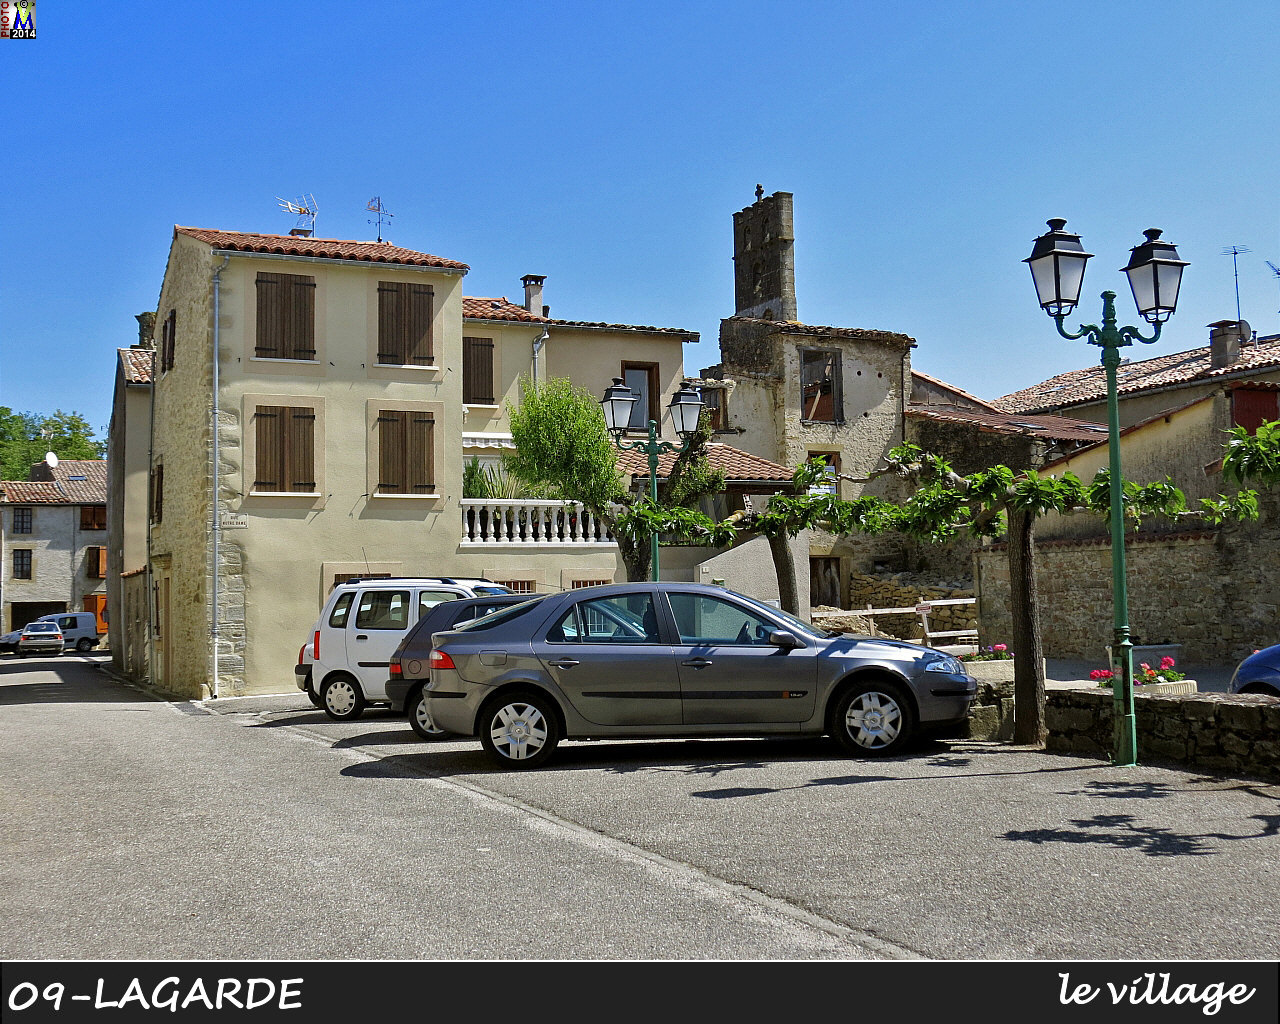 09LAGARDE_village_114.jpg